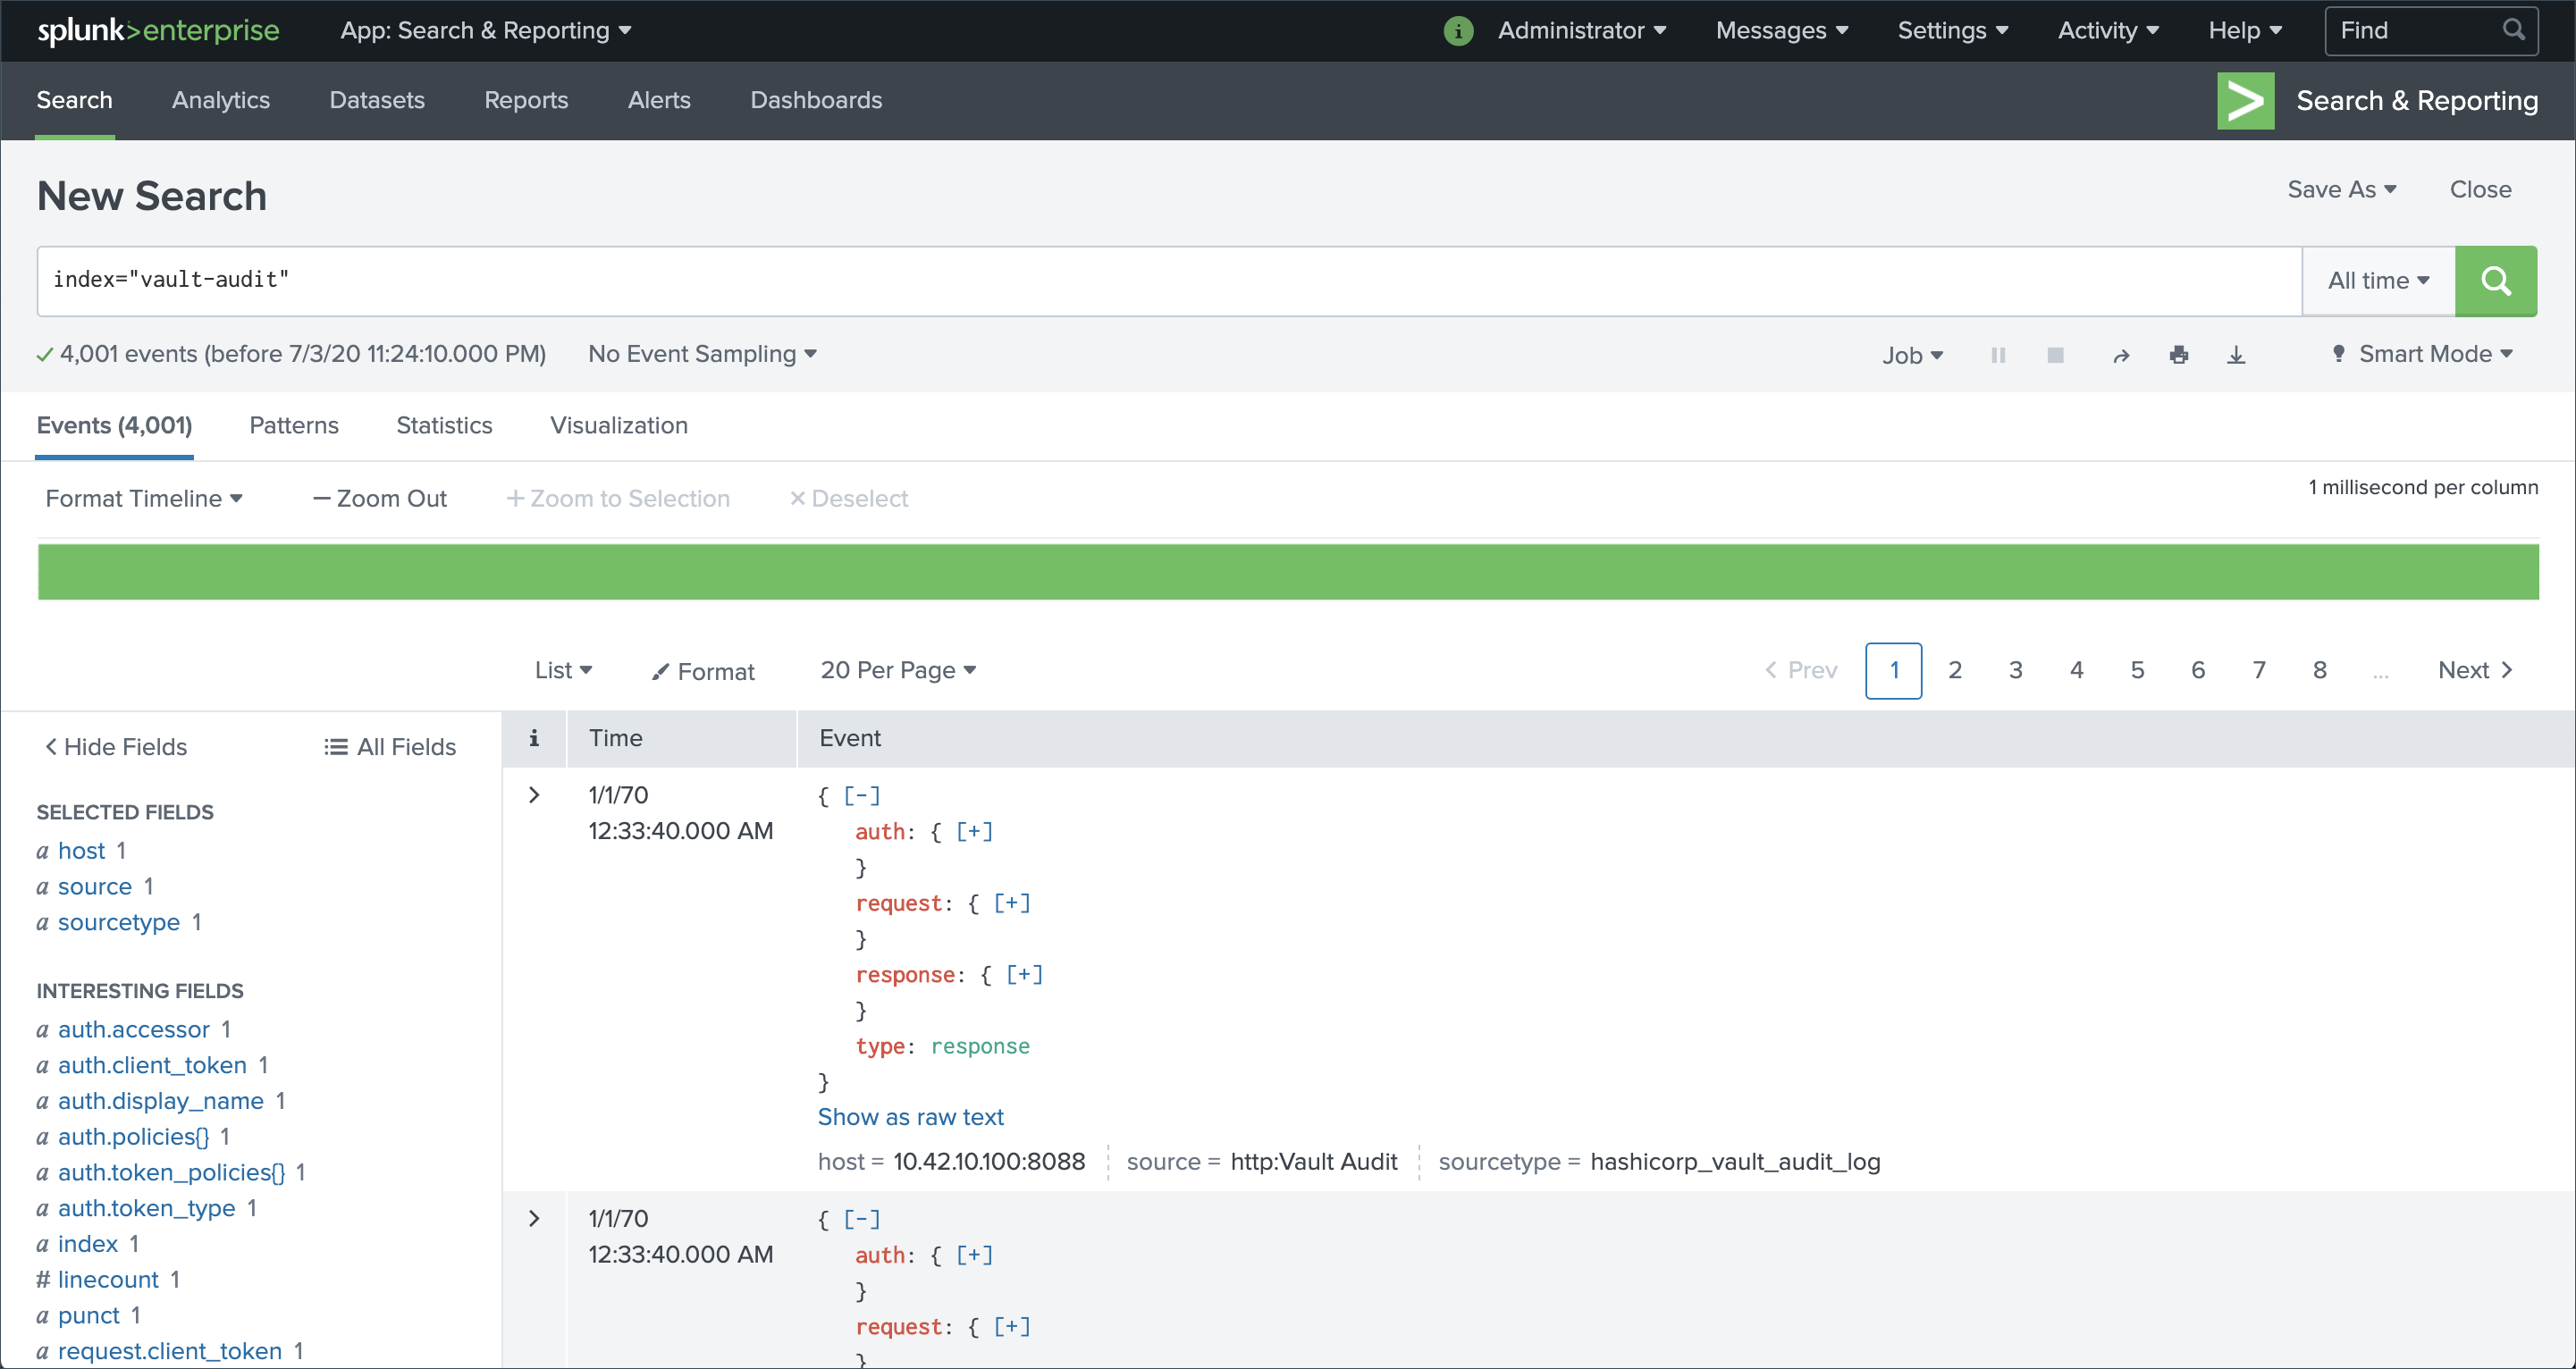 An example of Splunk search functionality